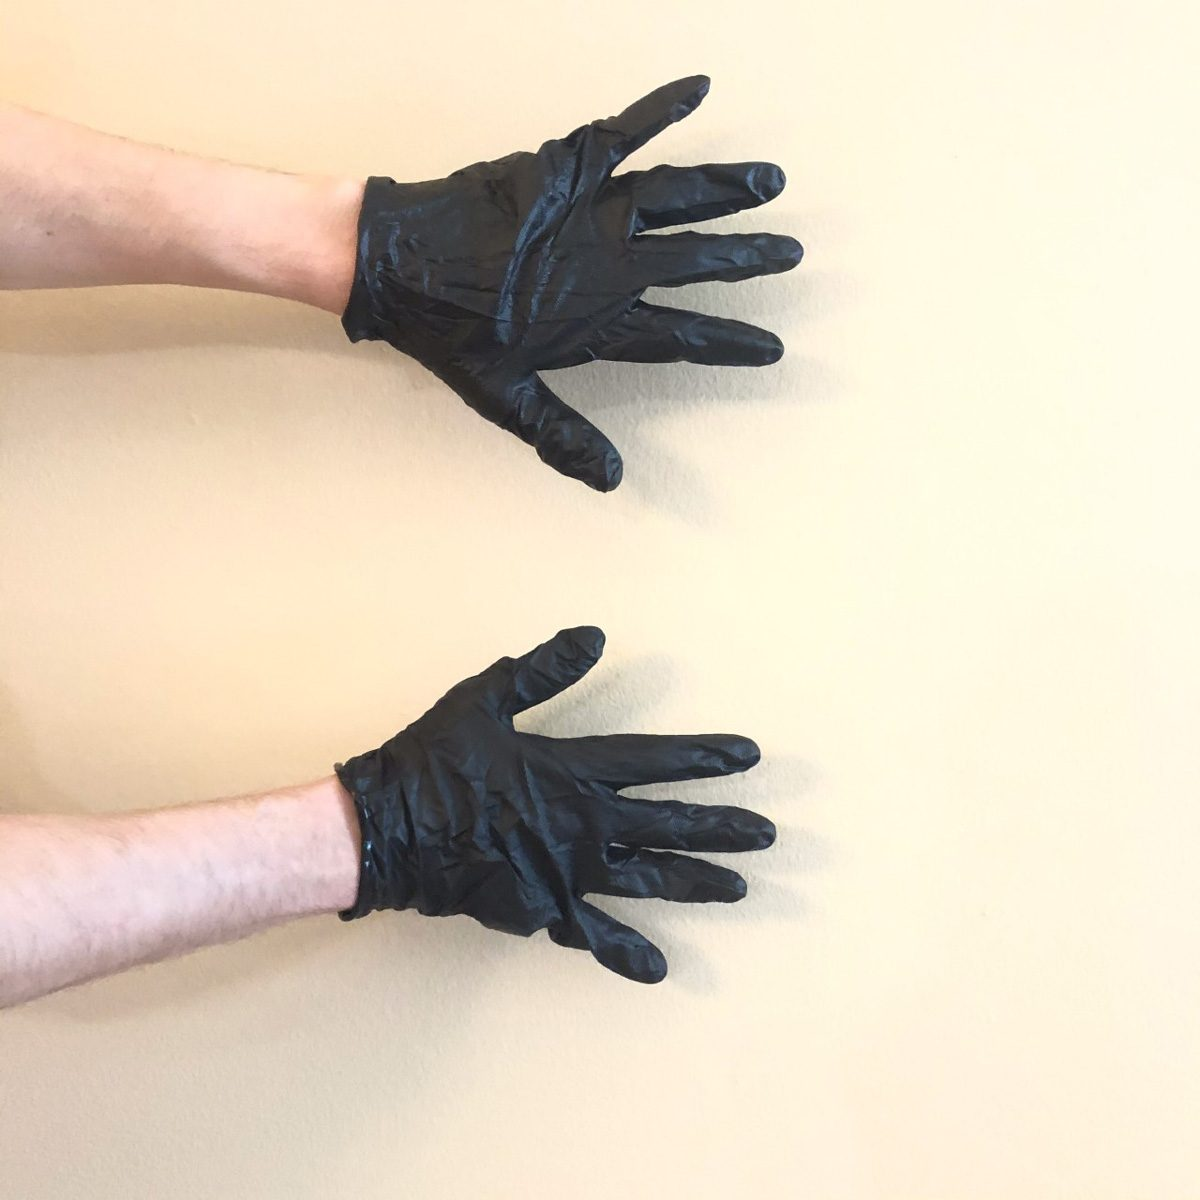 Hands with black nitrile gloves